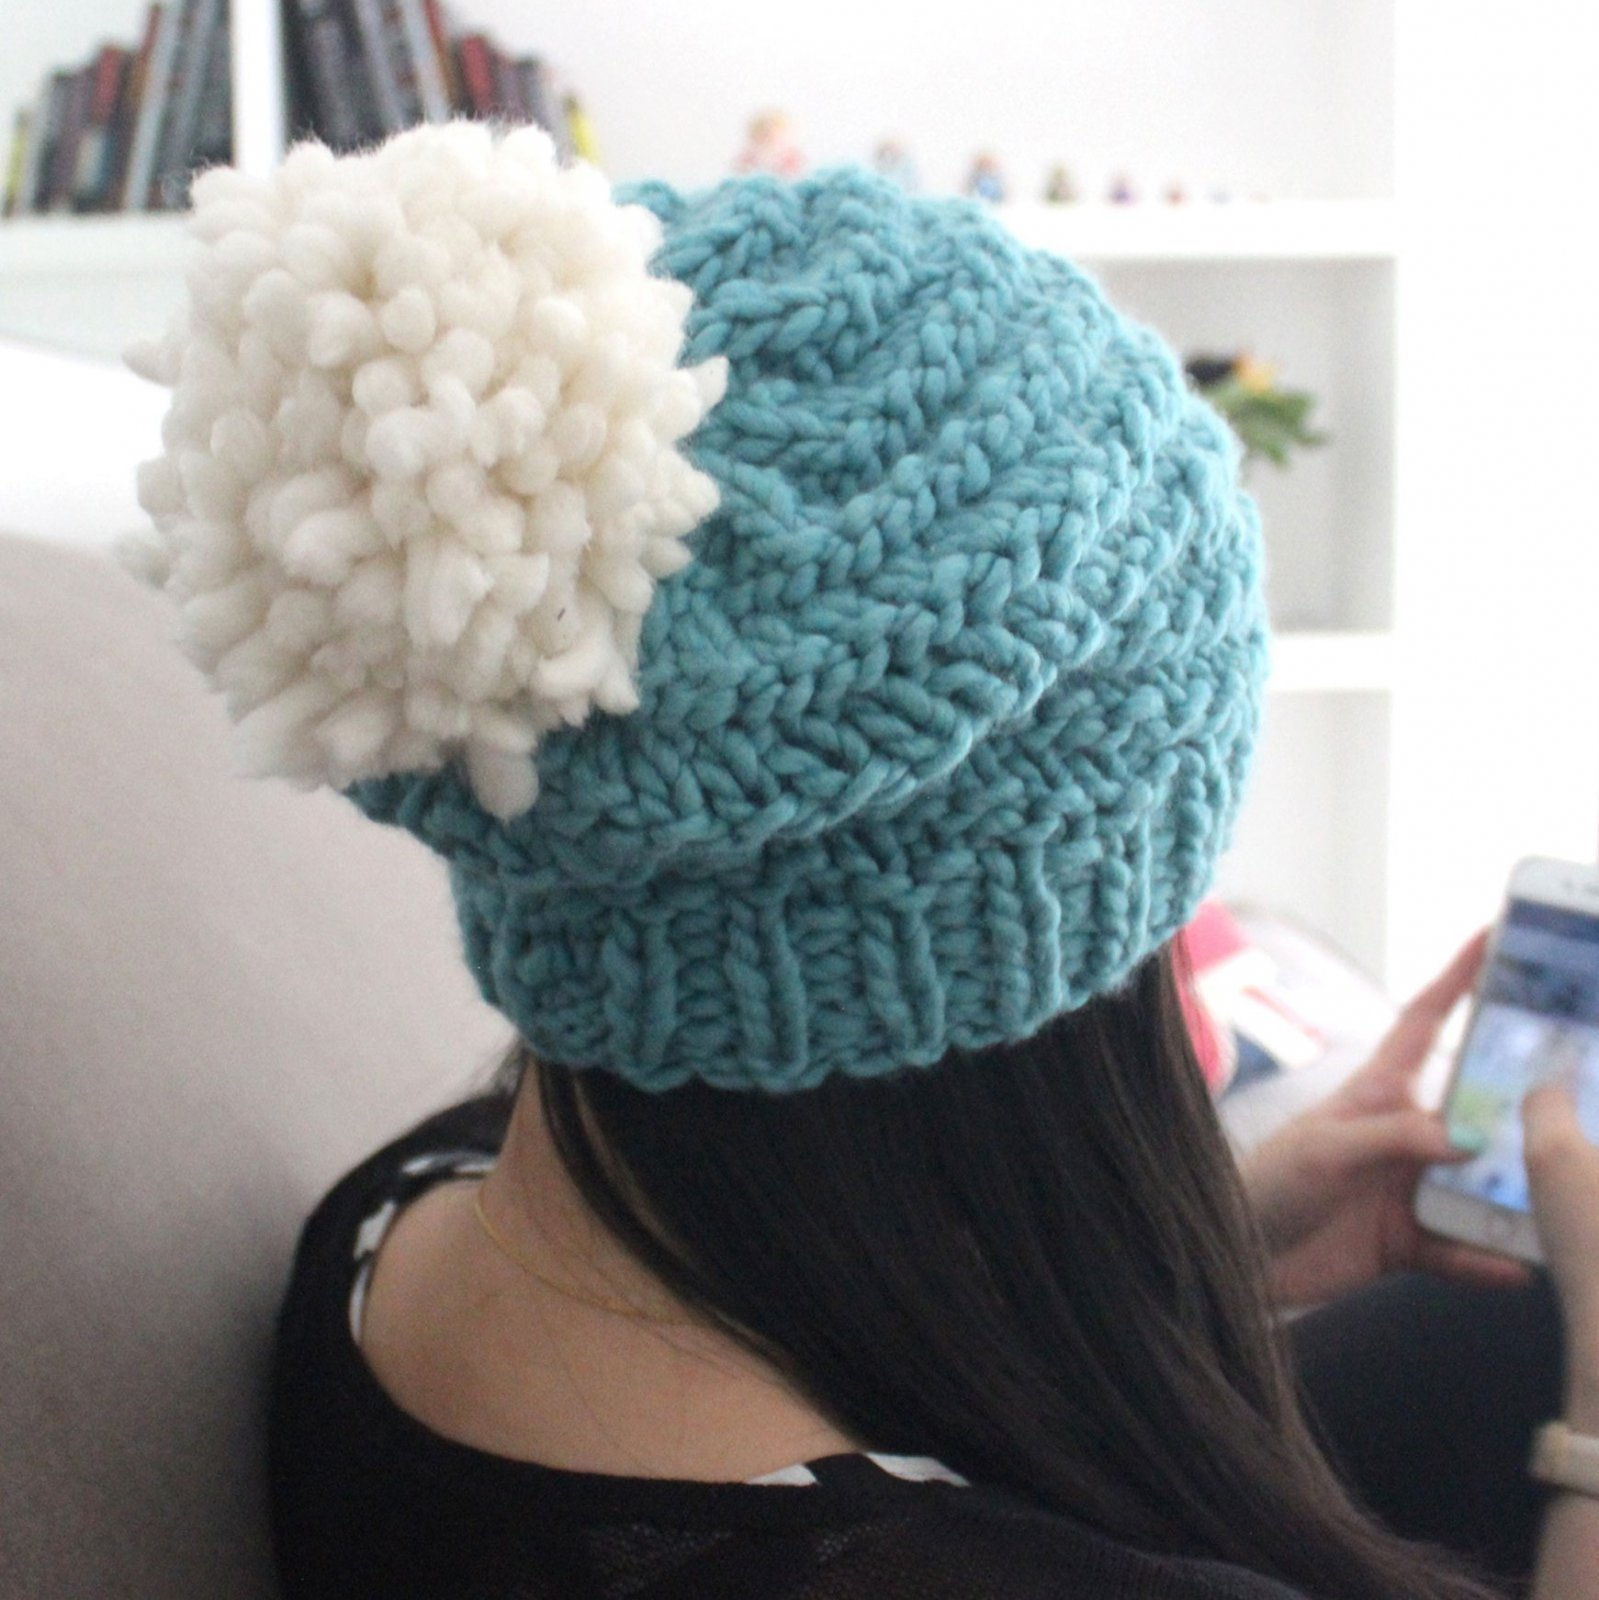 Knitting Kit - Teal Pom Pom Hat